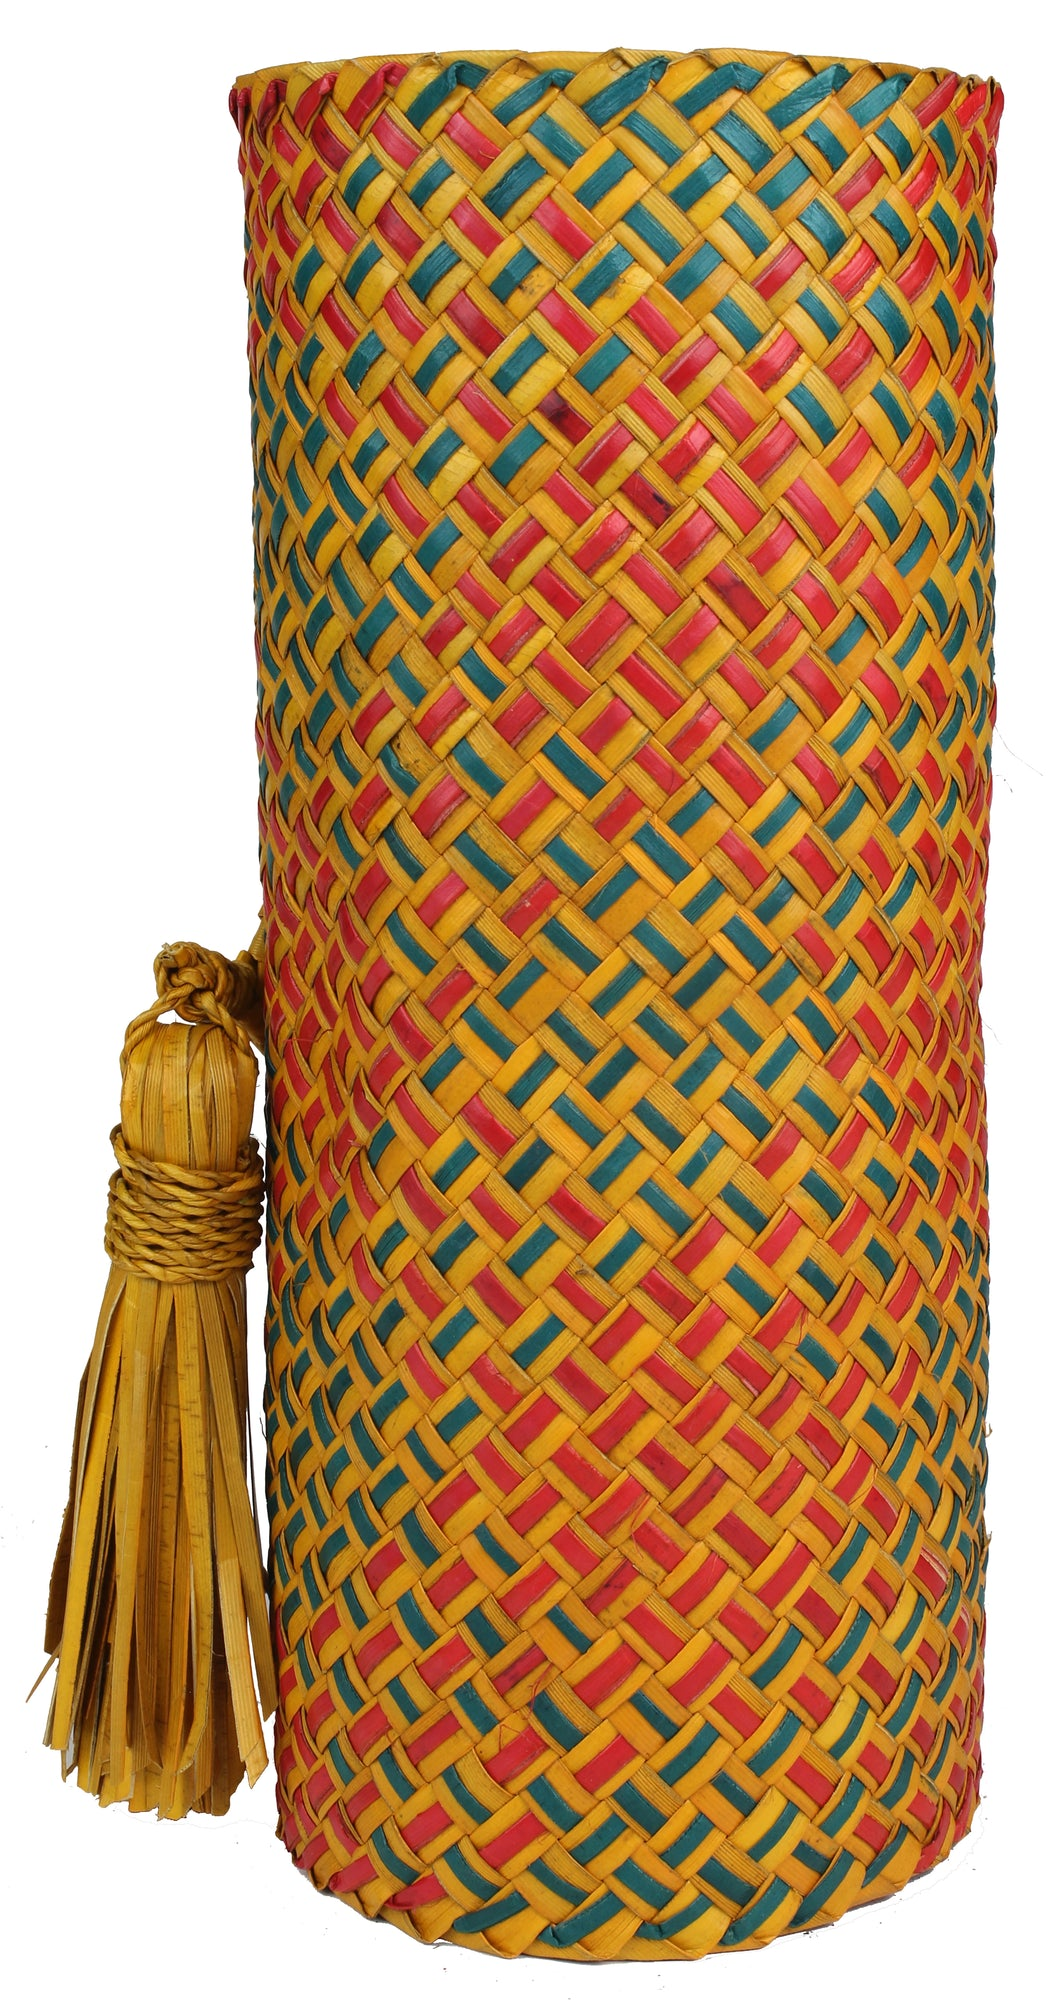 Table Runner Handwoven from Pandan Straw | Green/Orange/Red - Niger Bend